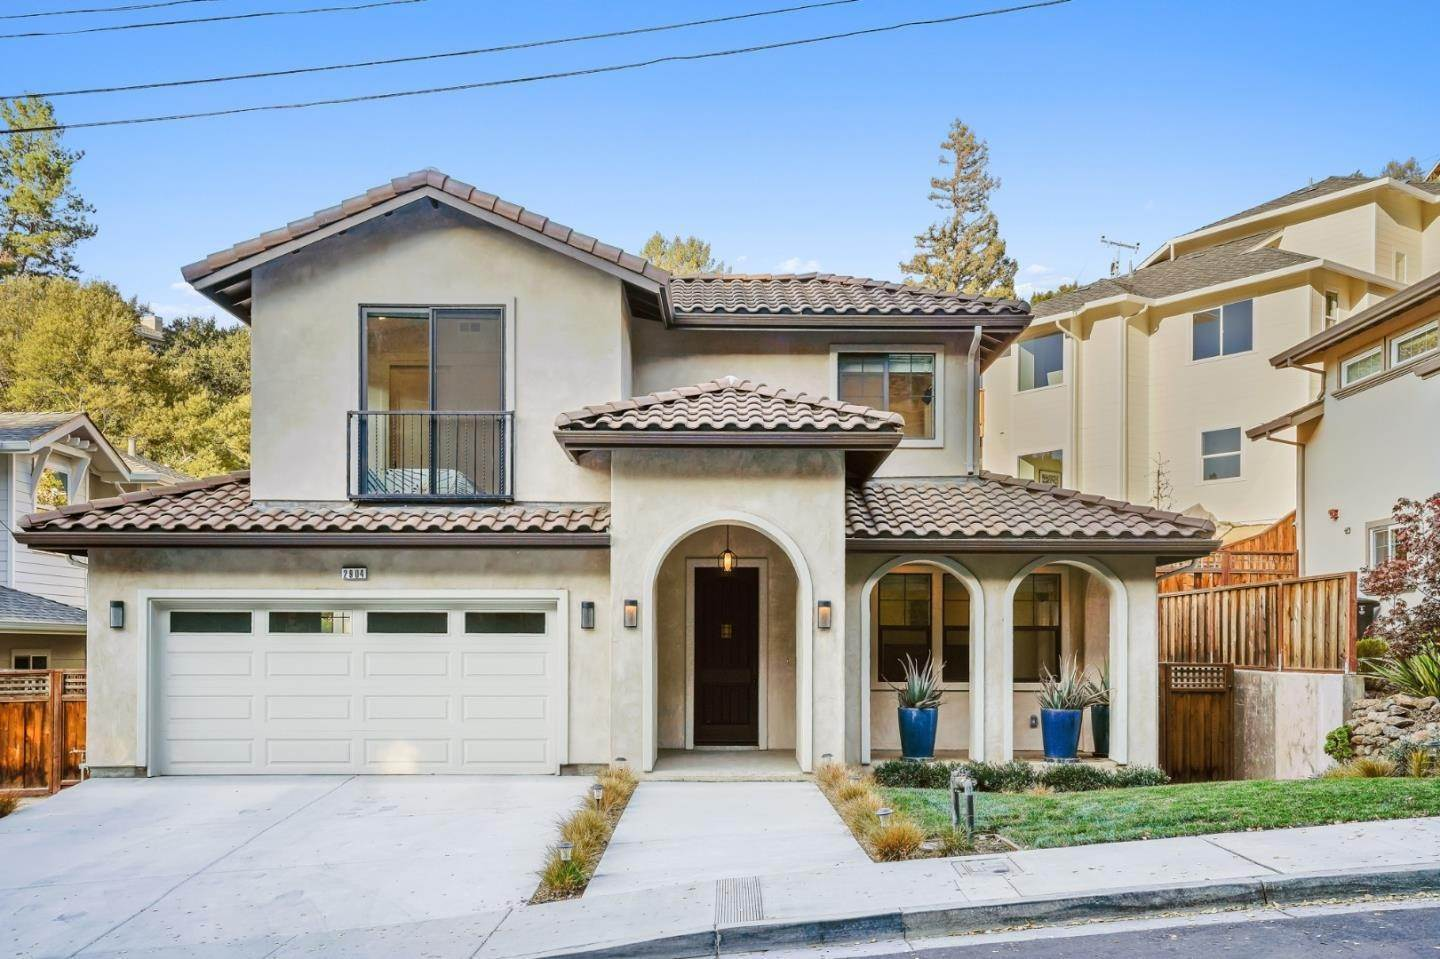 Single Family Homes for Sale at Belmont, Belmont, California United States